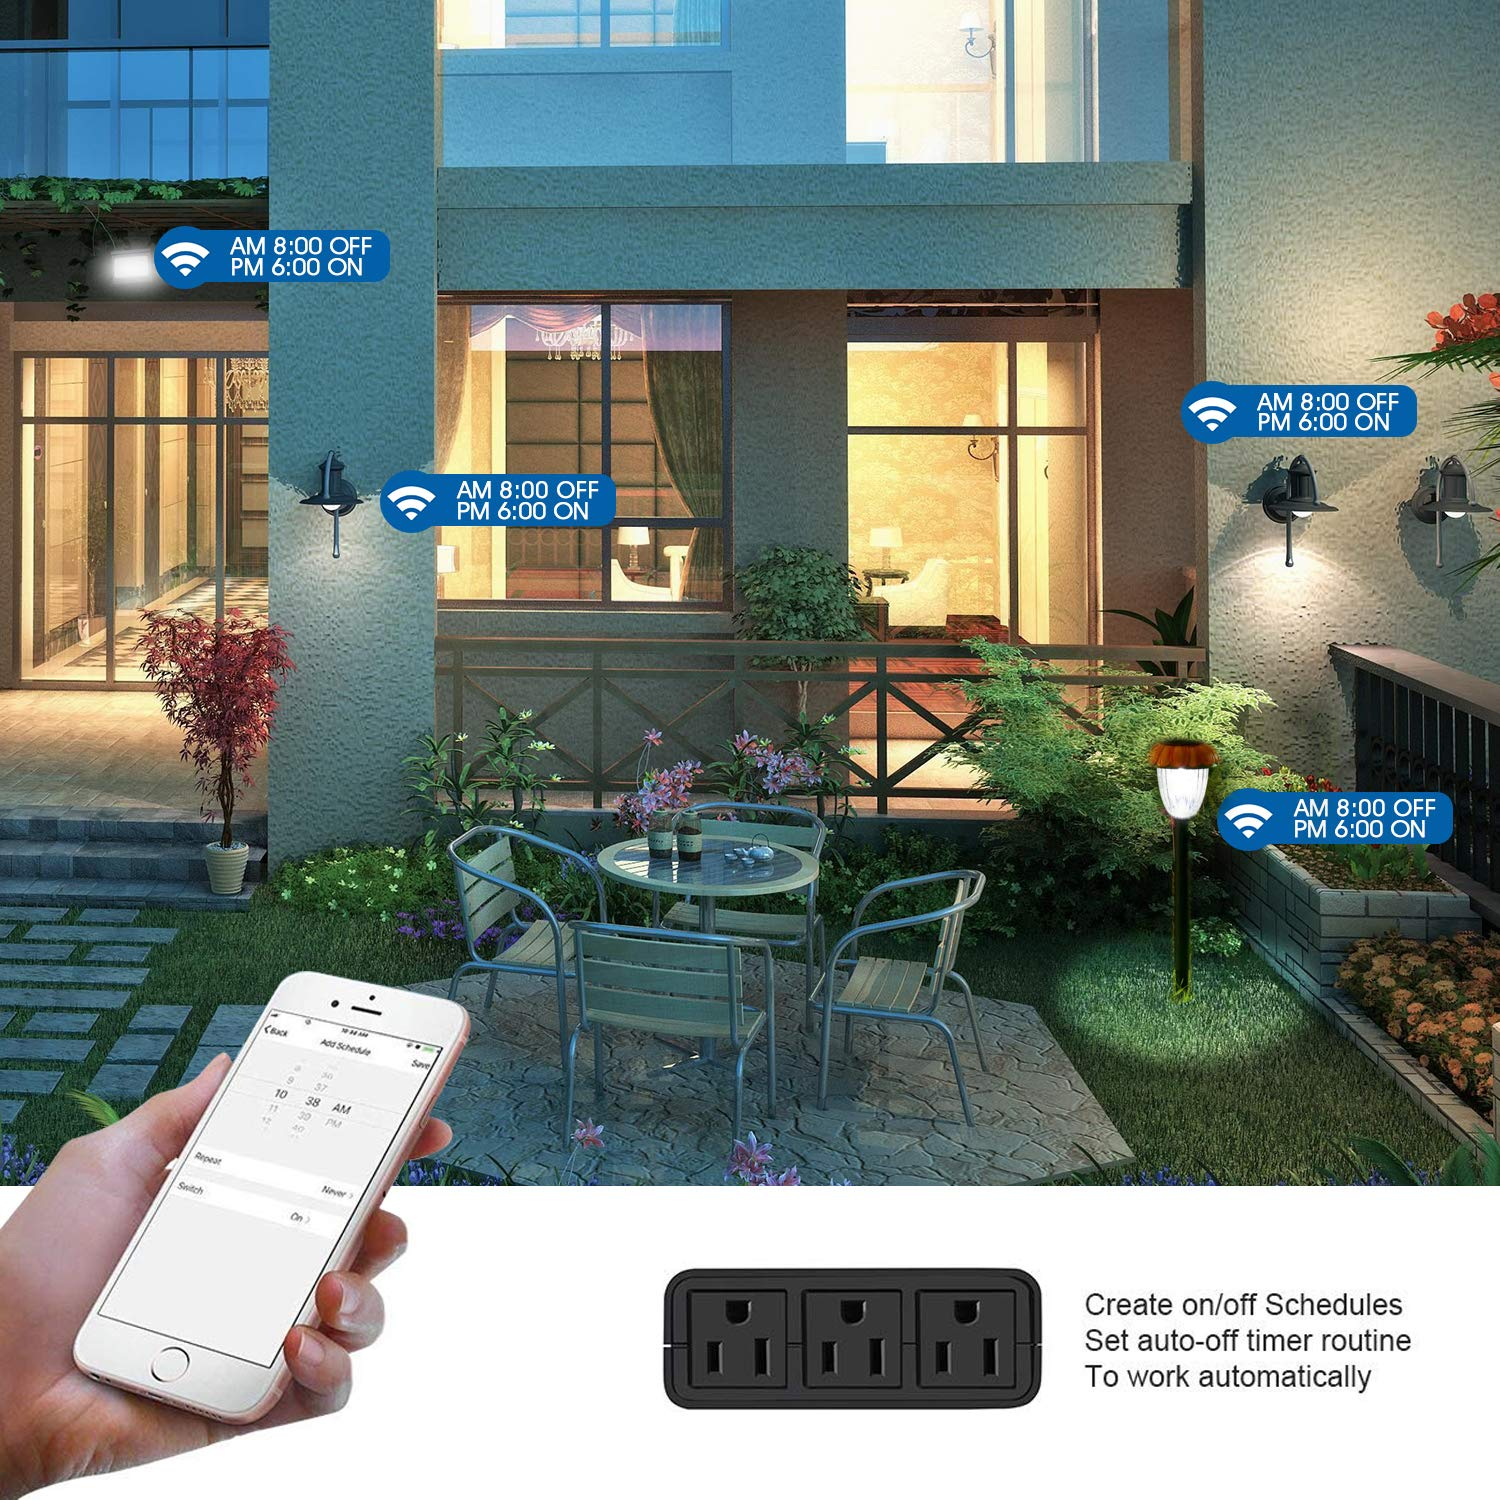 IP44 Waterproof Compatible with Alexa Google Home WiFi Outlet with 3 Sockets Wireless Remote Control Timer /& Countdown by Smartphone APP VAVOFO Outdoor Smart Plug